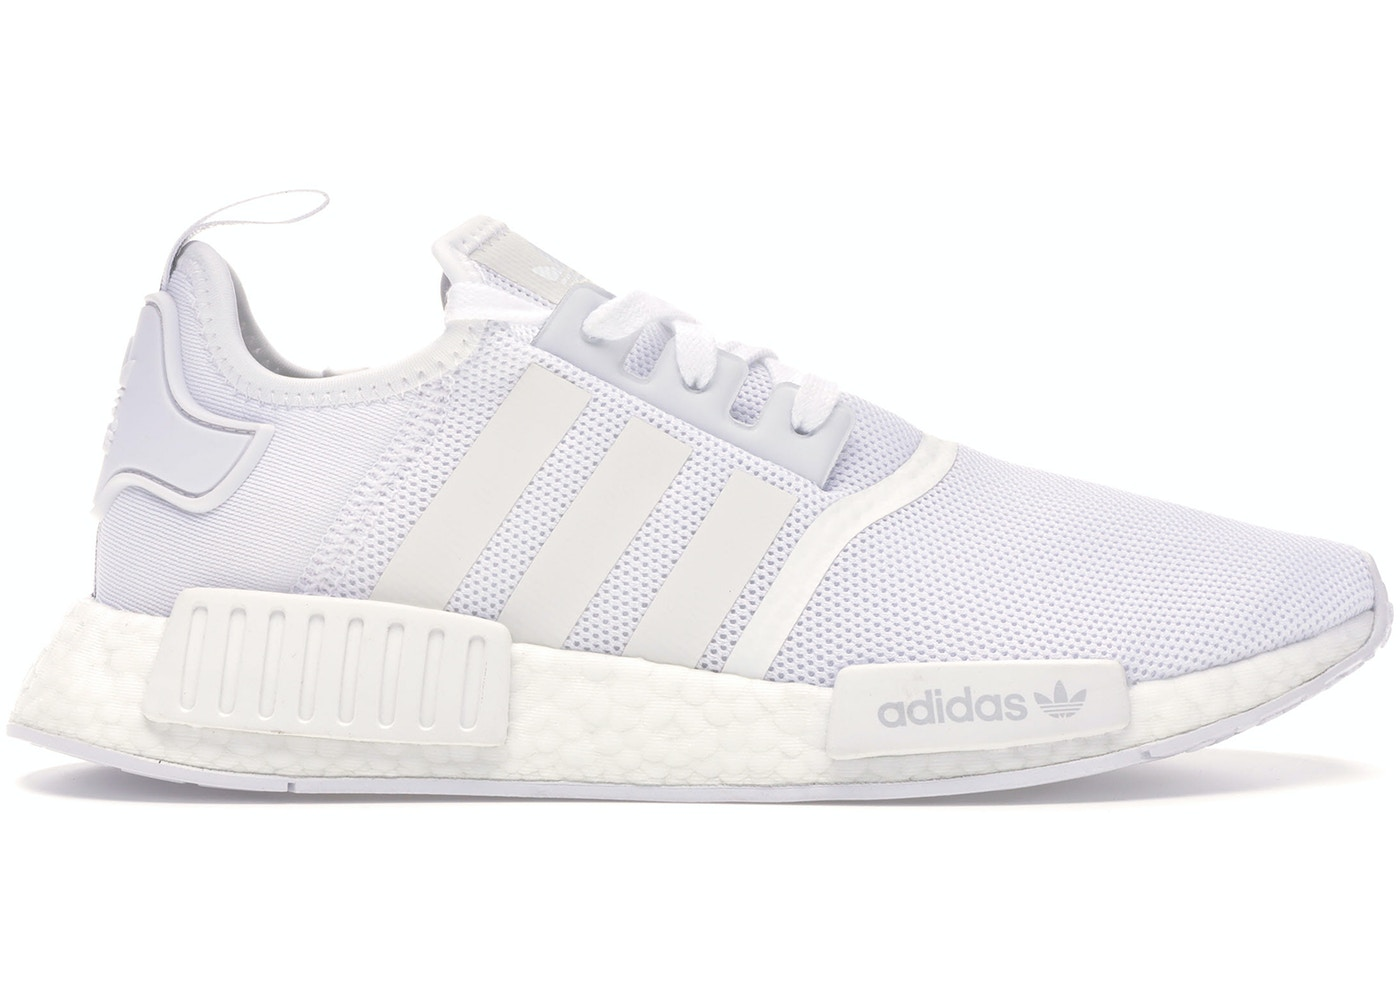 newest 067a1 dd8b2 adidas NMD R1 Footwear White Trace Grey